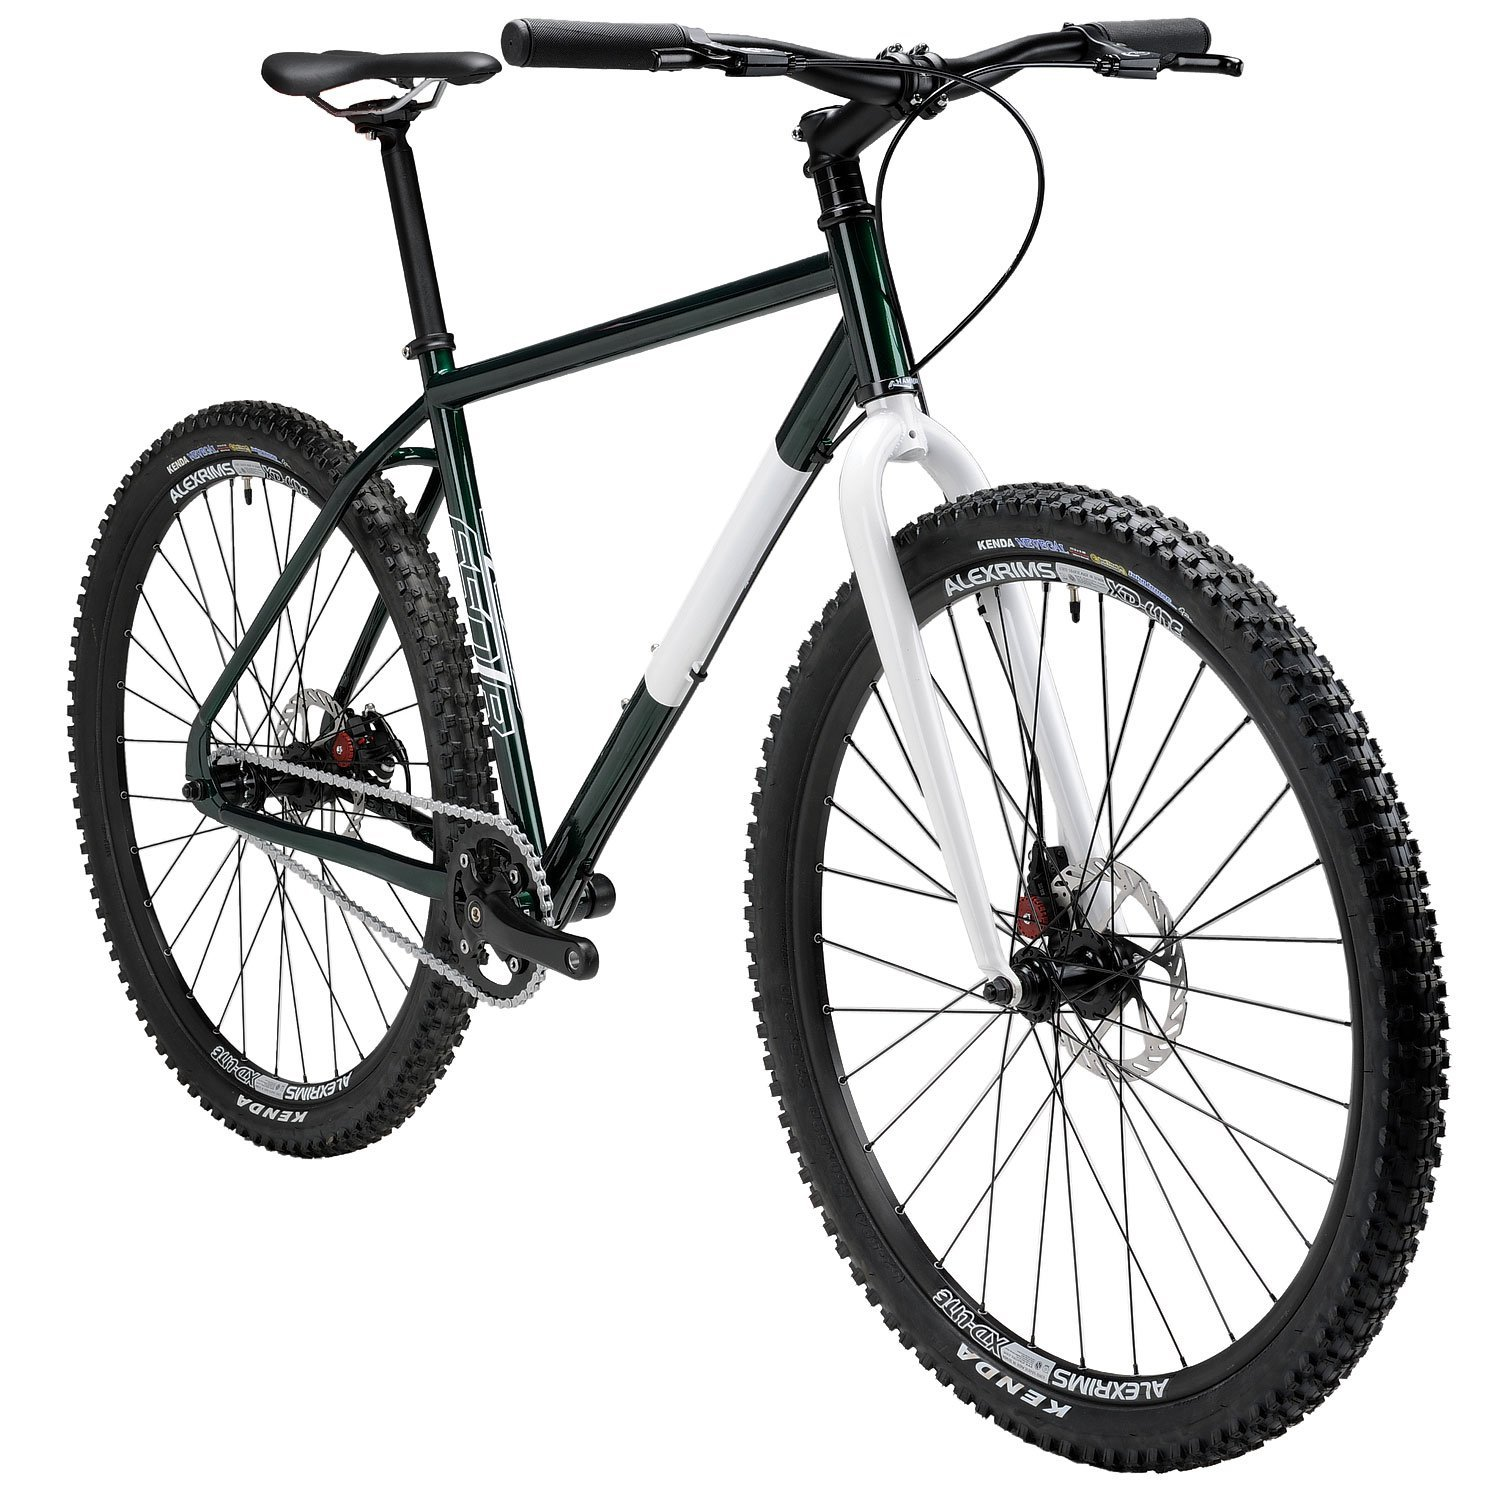 nashbar bee s knees single speed 650b mountain bike review. Black Bedroom Furniture Sets. Home Design Ideas